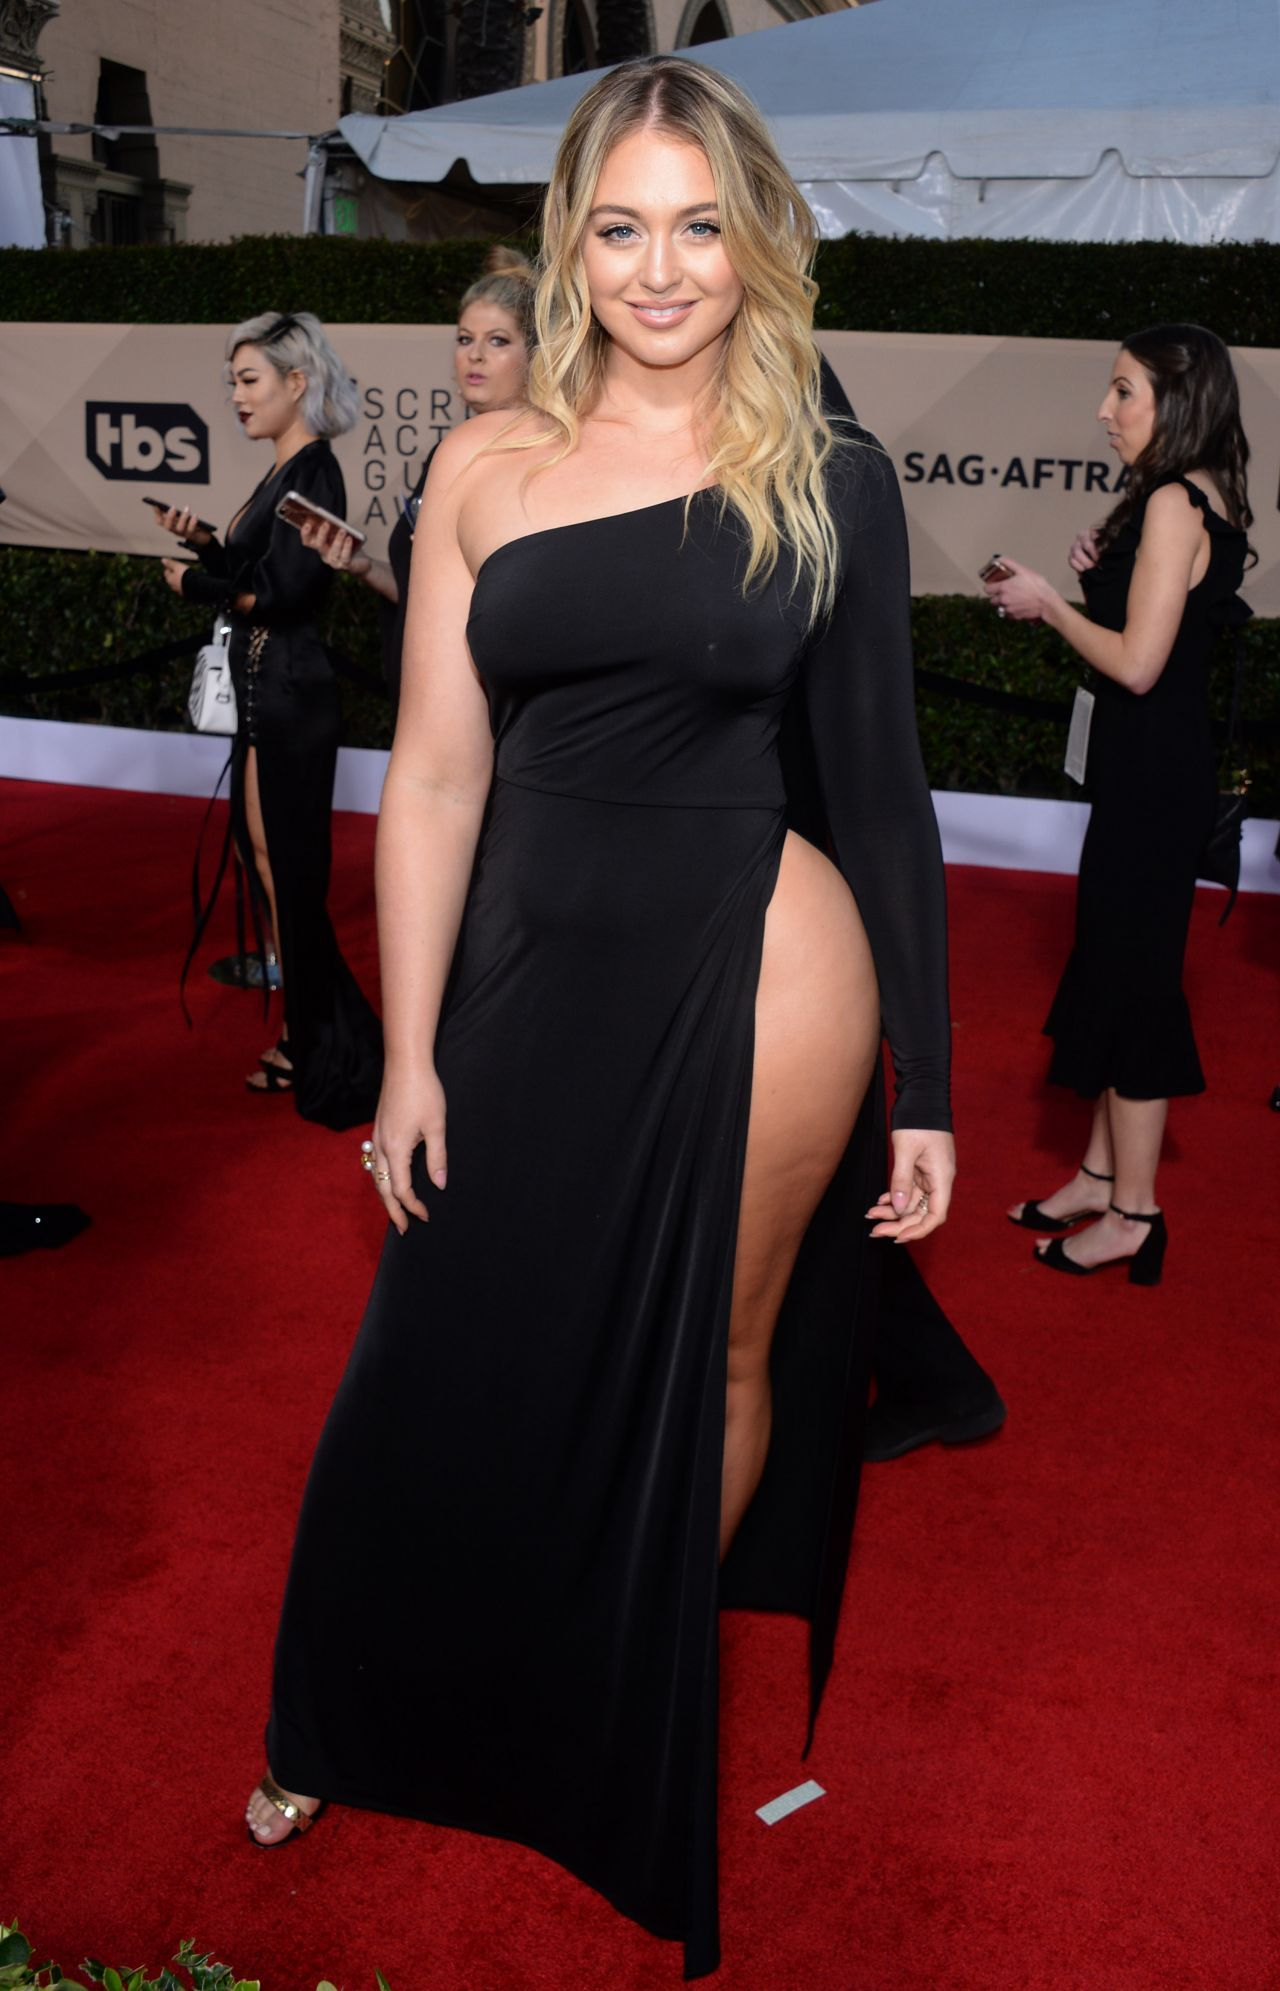 Iskra Lawrence Sexy in Los Angeles - 9 Photos - 2019 year